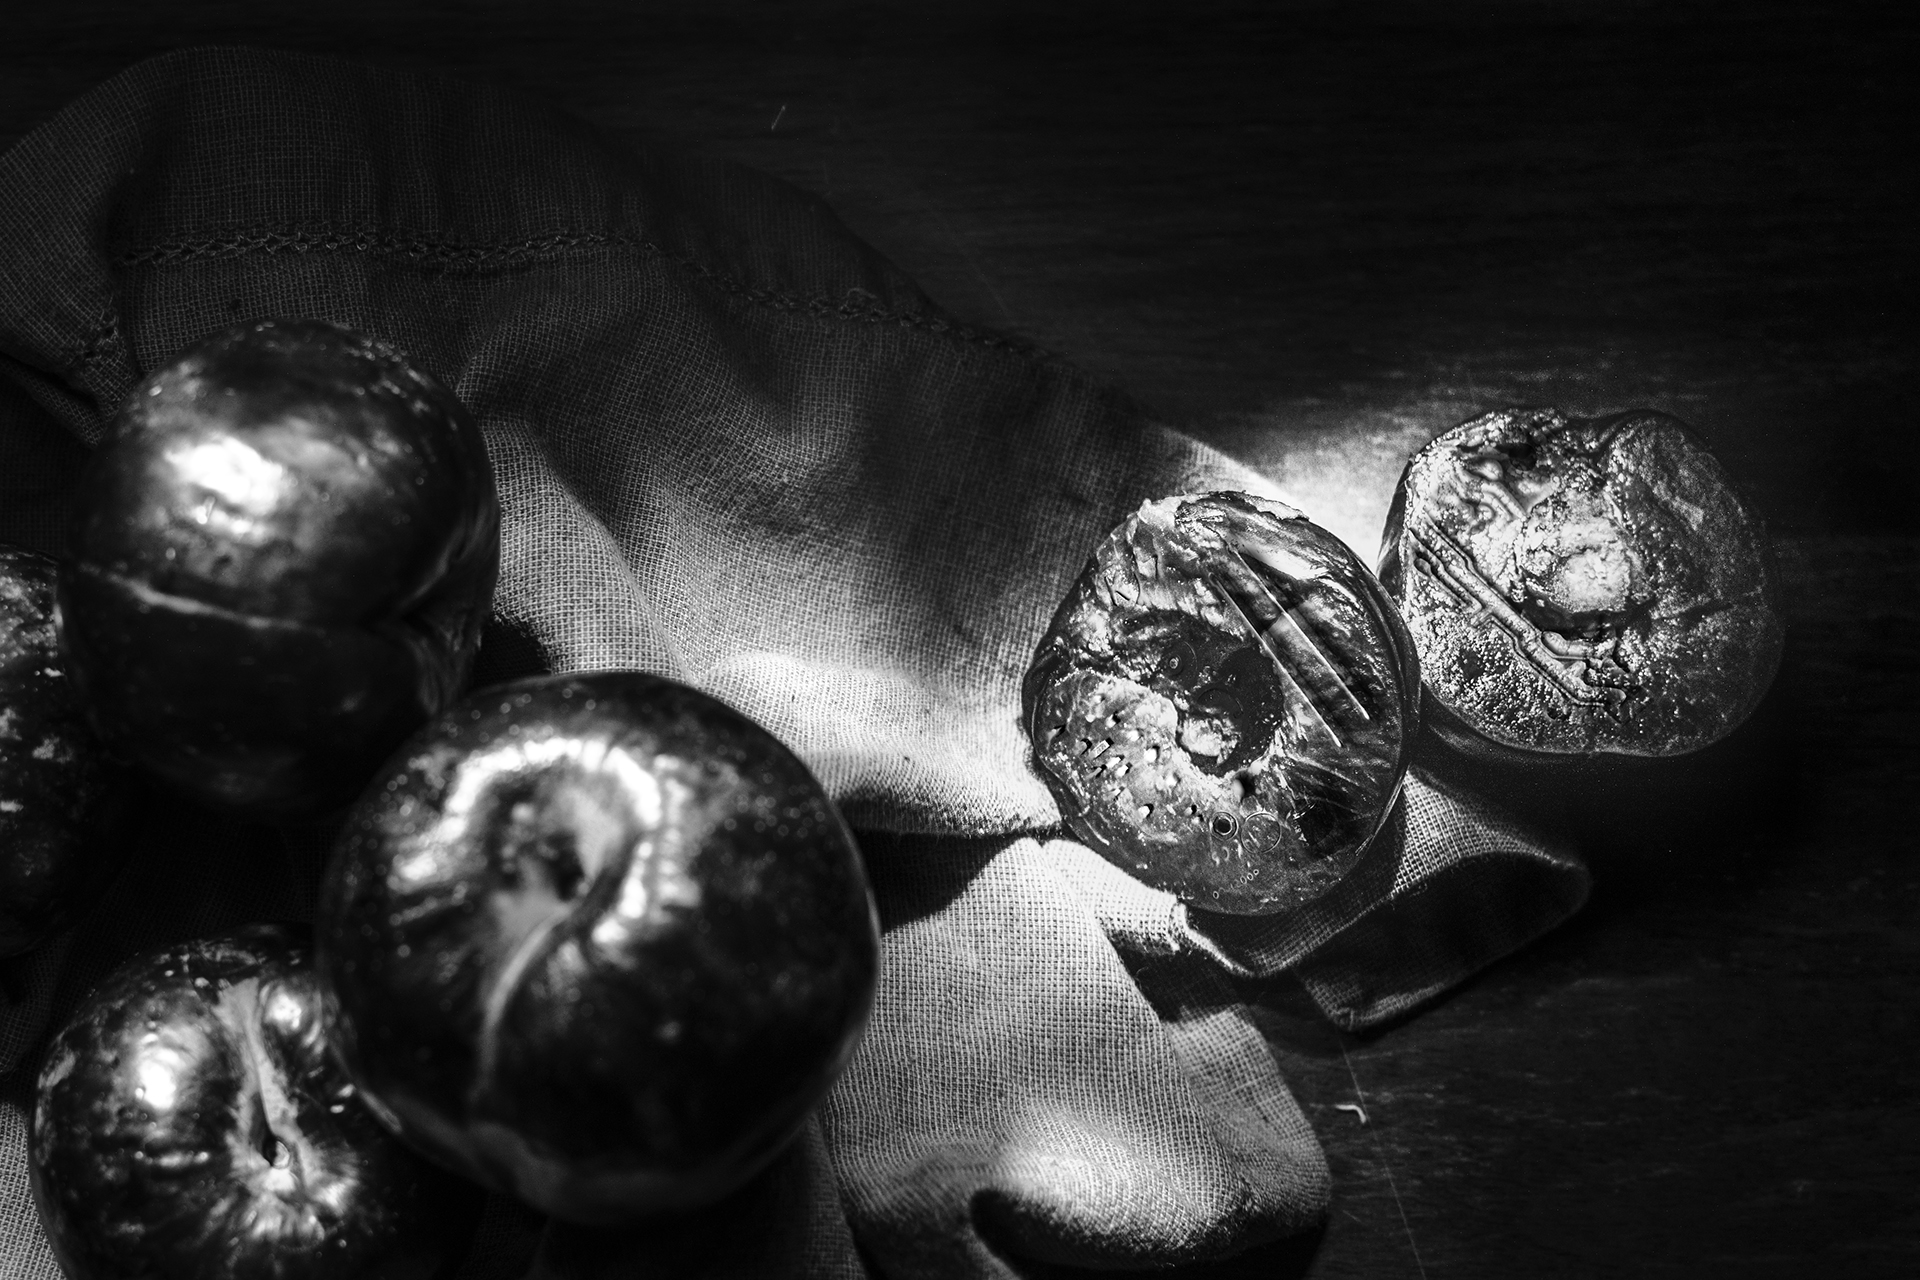 Still Life with Genetically Modified Plums